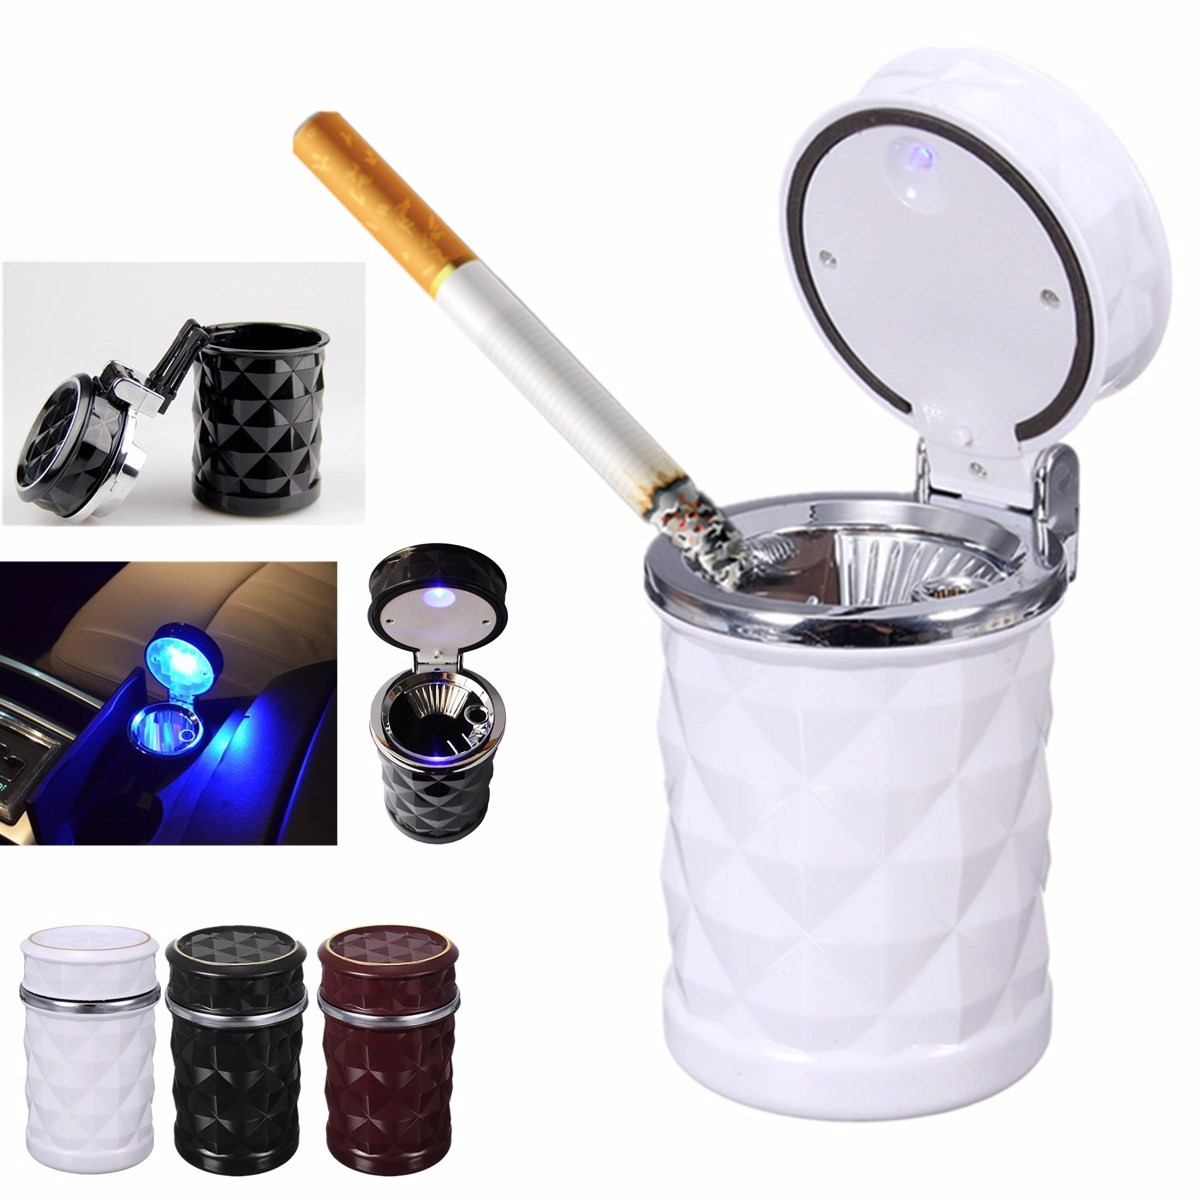 LED Auto Car Cigarette Ash Ashtray Smokeless Stand Cylinder Cup Holder Gifts